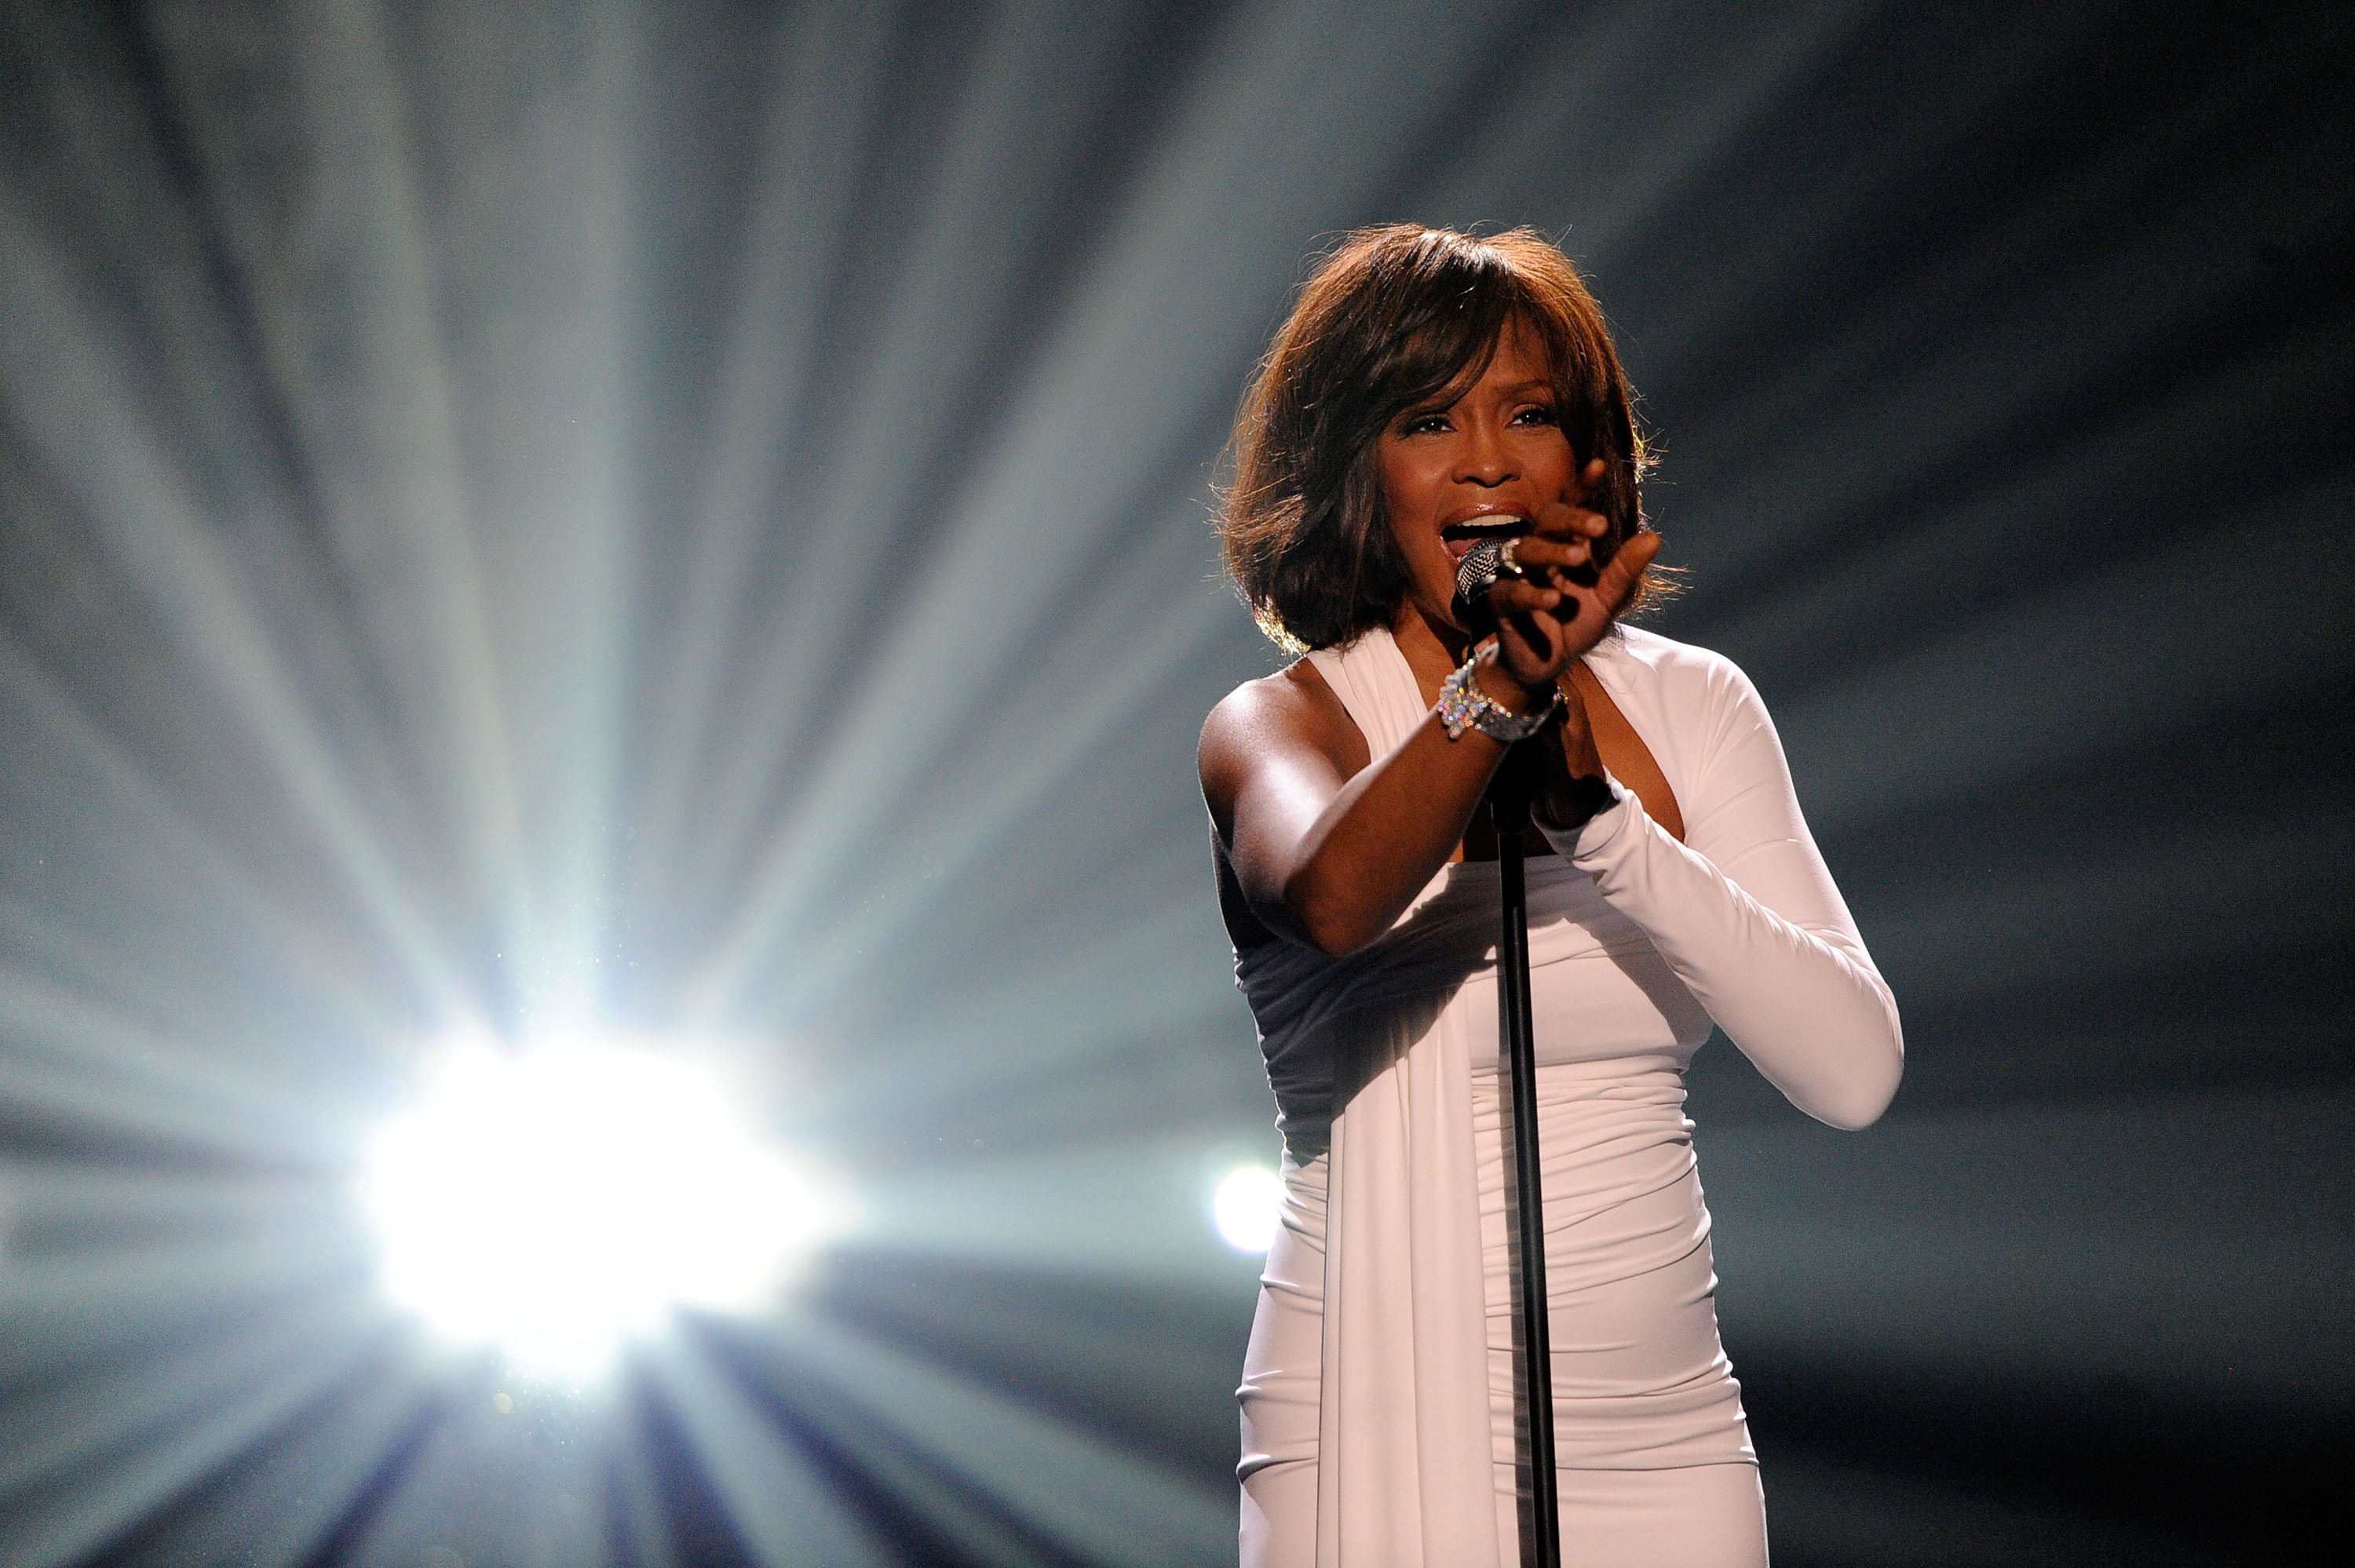 Whitney Houston at the 2009 American Music Awards on Nov. 22, 2009 in Los Angeles, California. | Photo: Getty Images